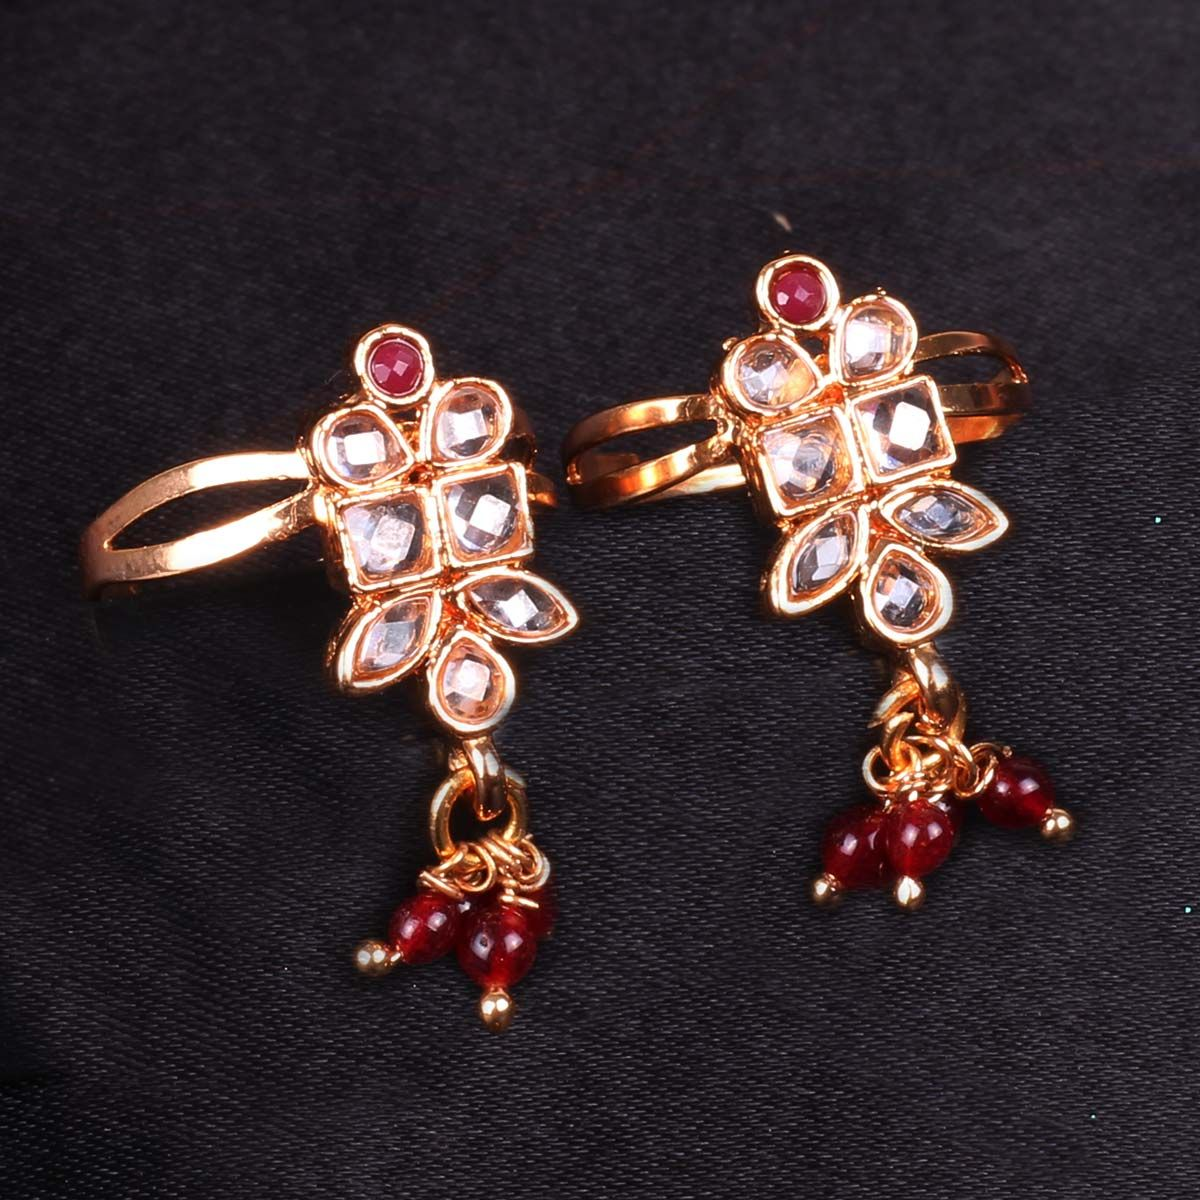 Toe Ring with white AD stones and maroon beads - WJ0049 Bridal Jewellery Toe Ring